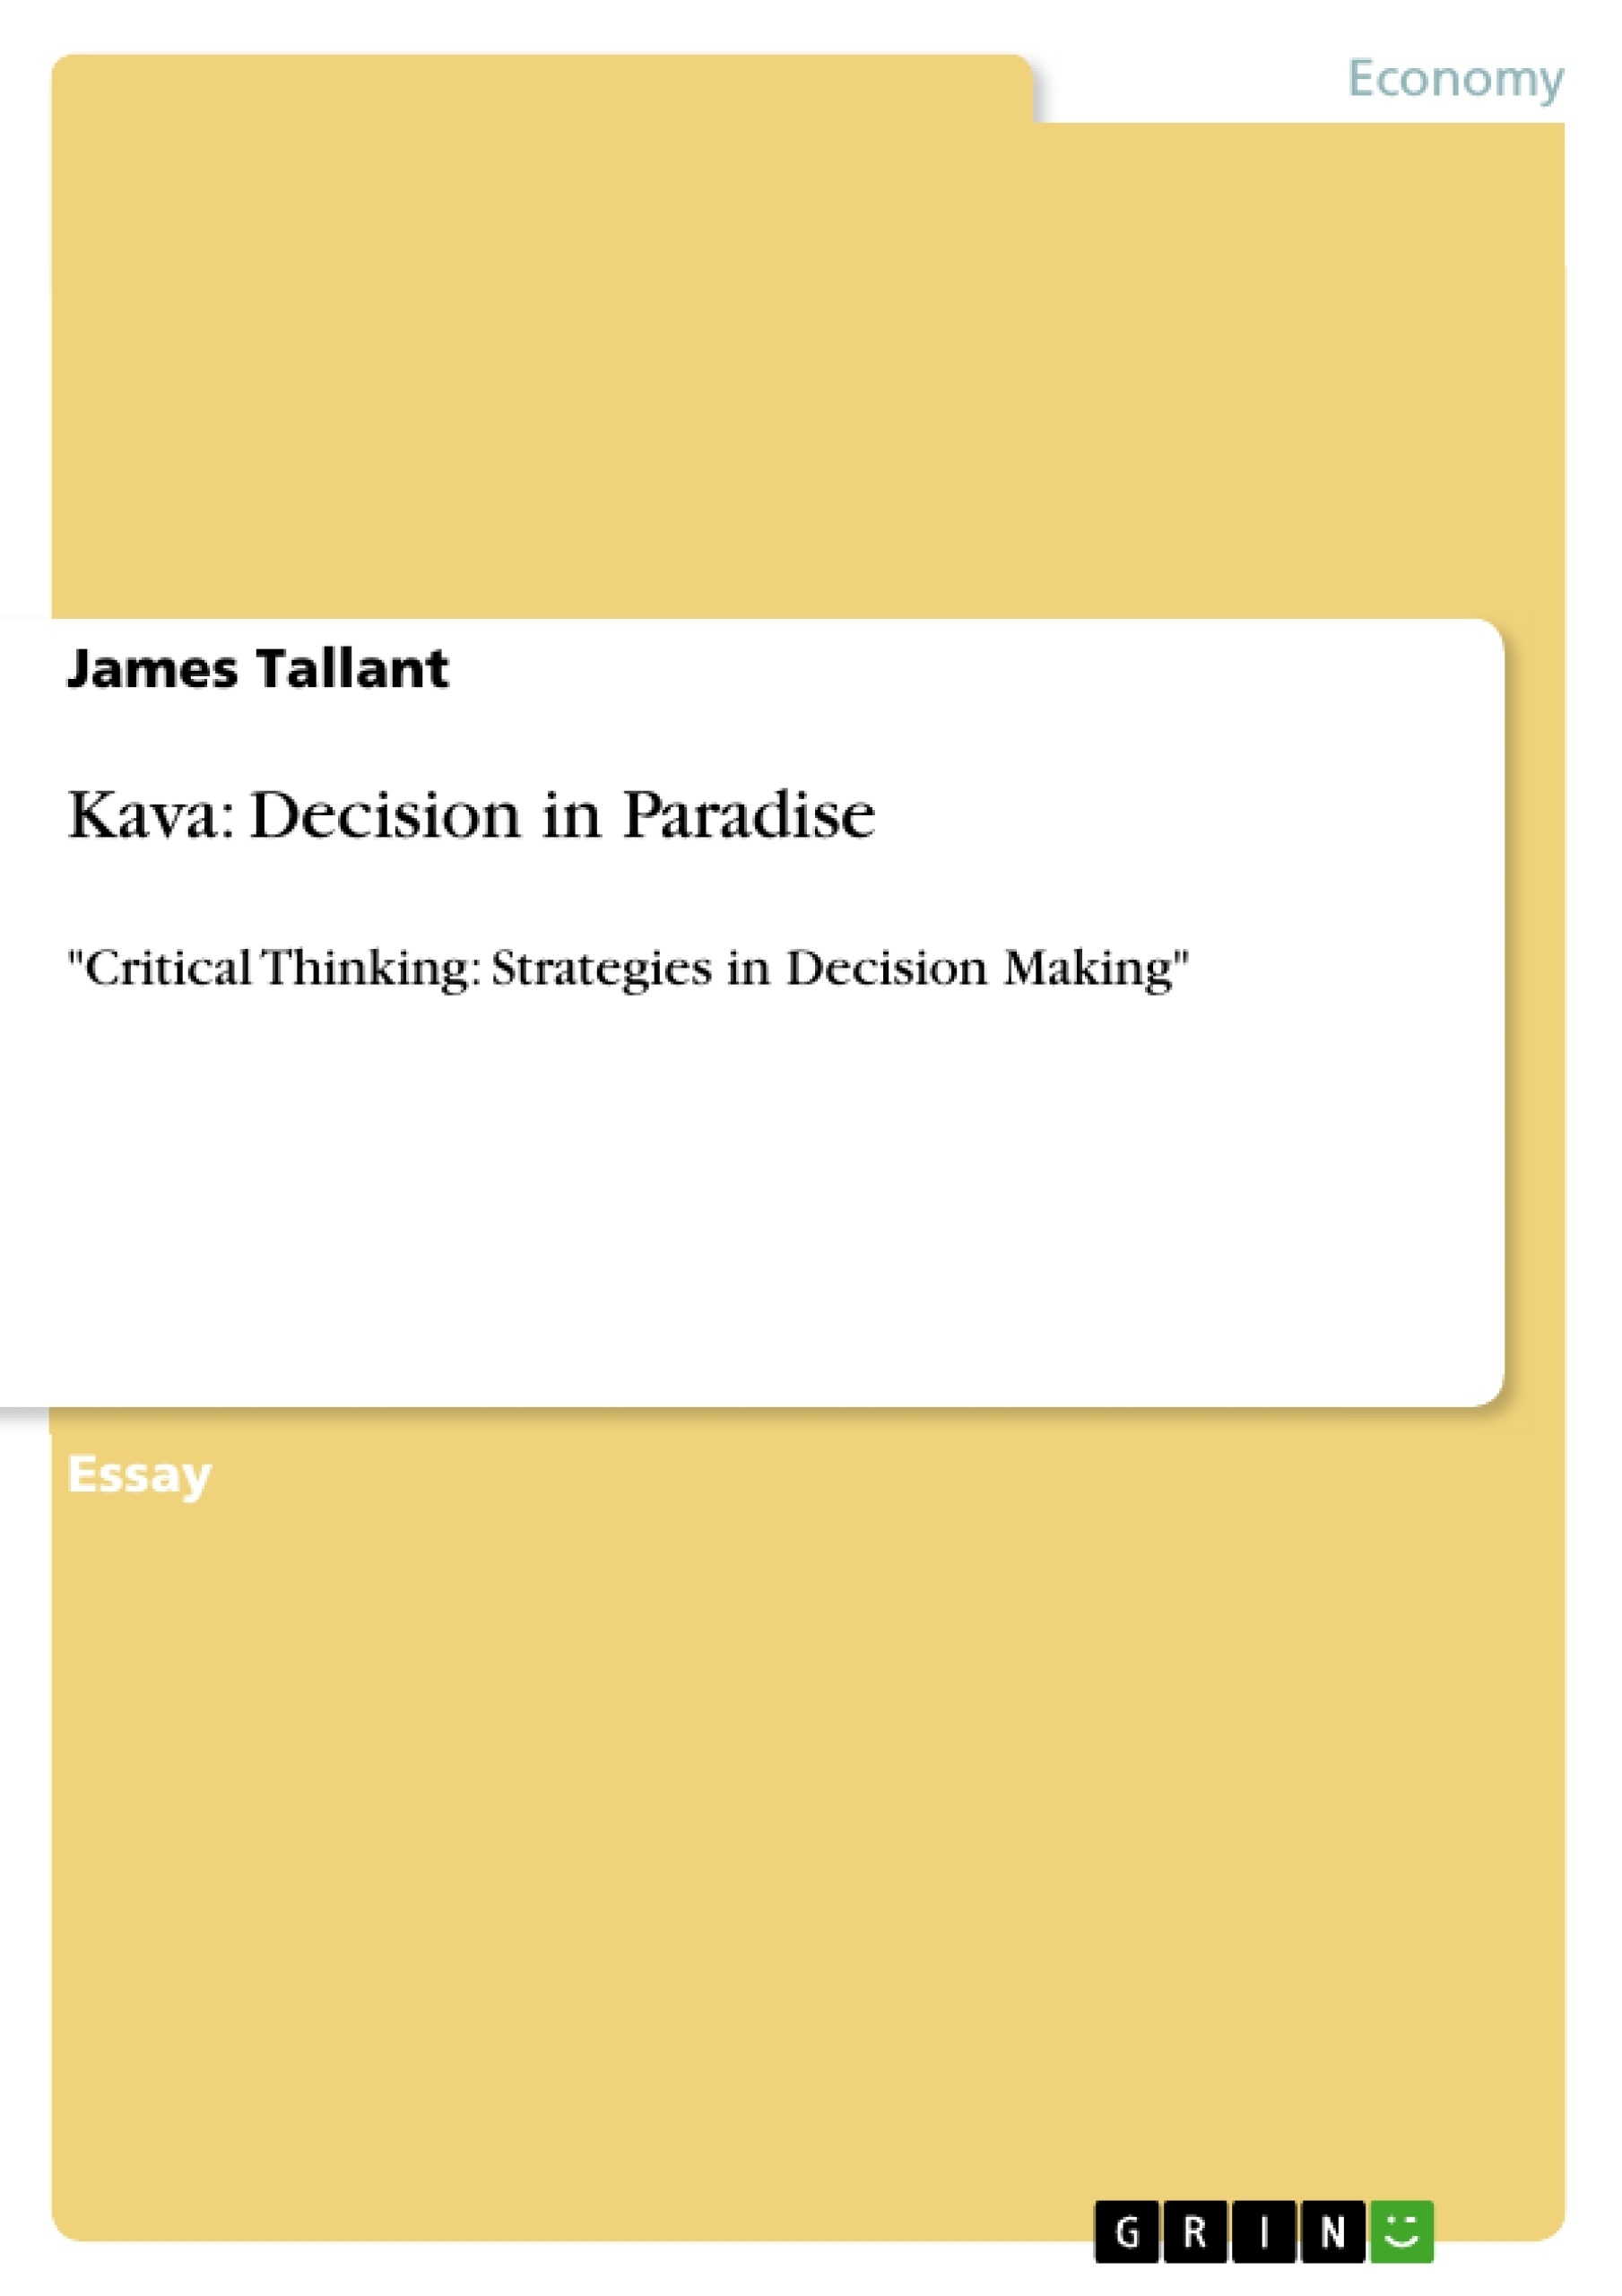 Title: Kava: Decision in Paradise